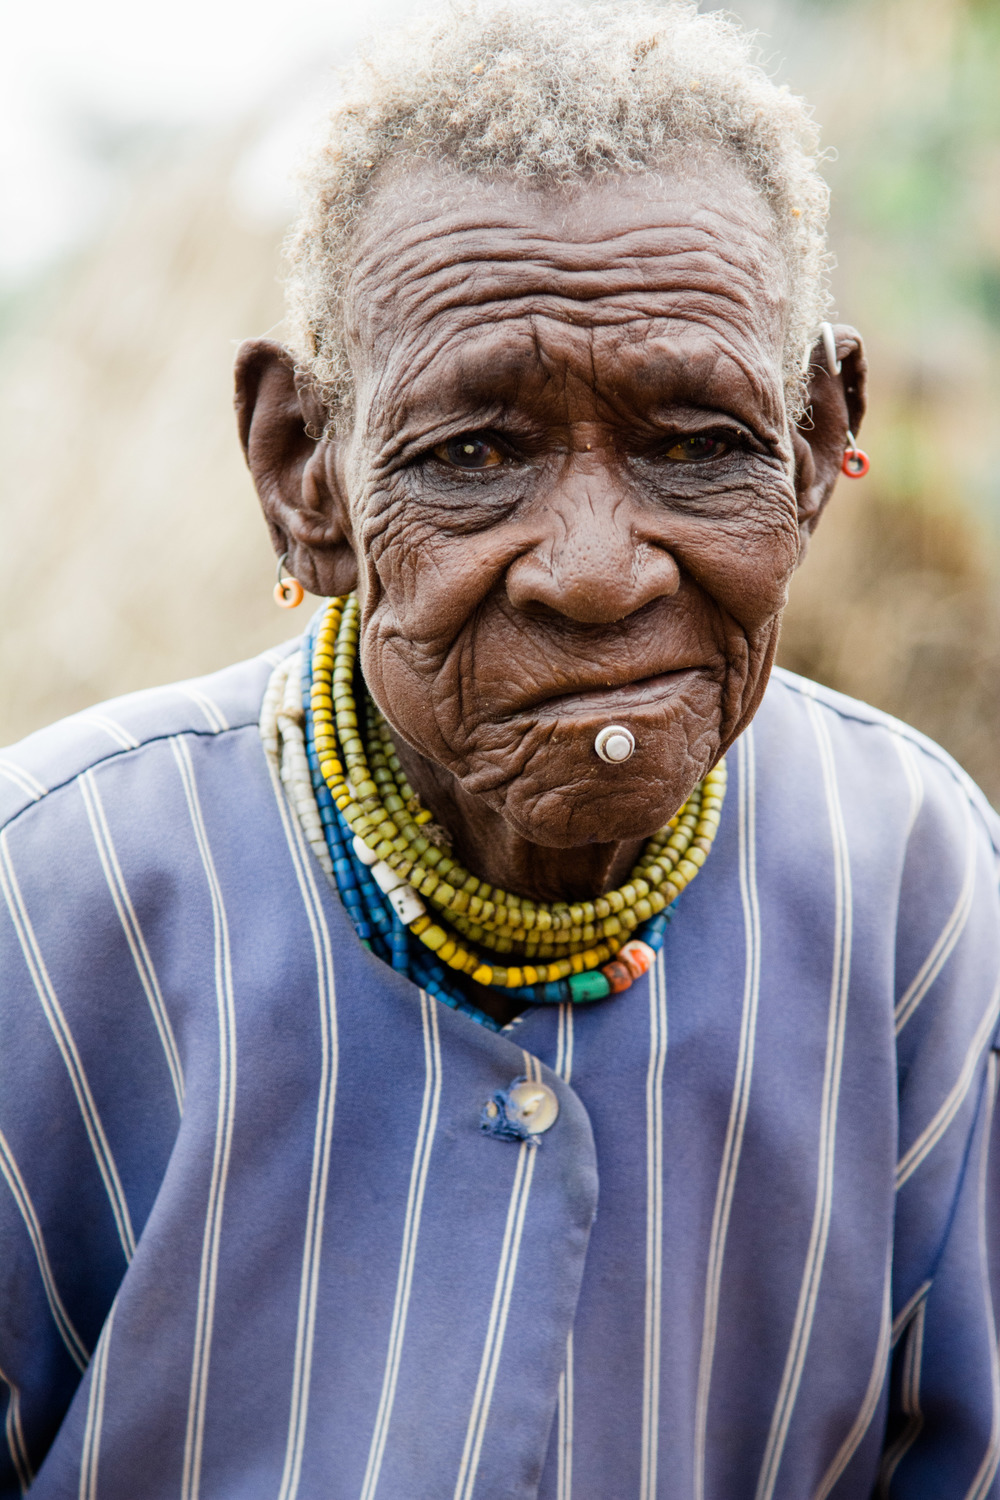 A Turkana woman who guessed she was around ninety years old.